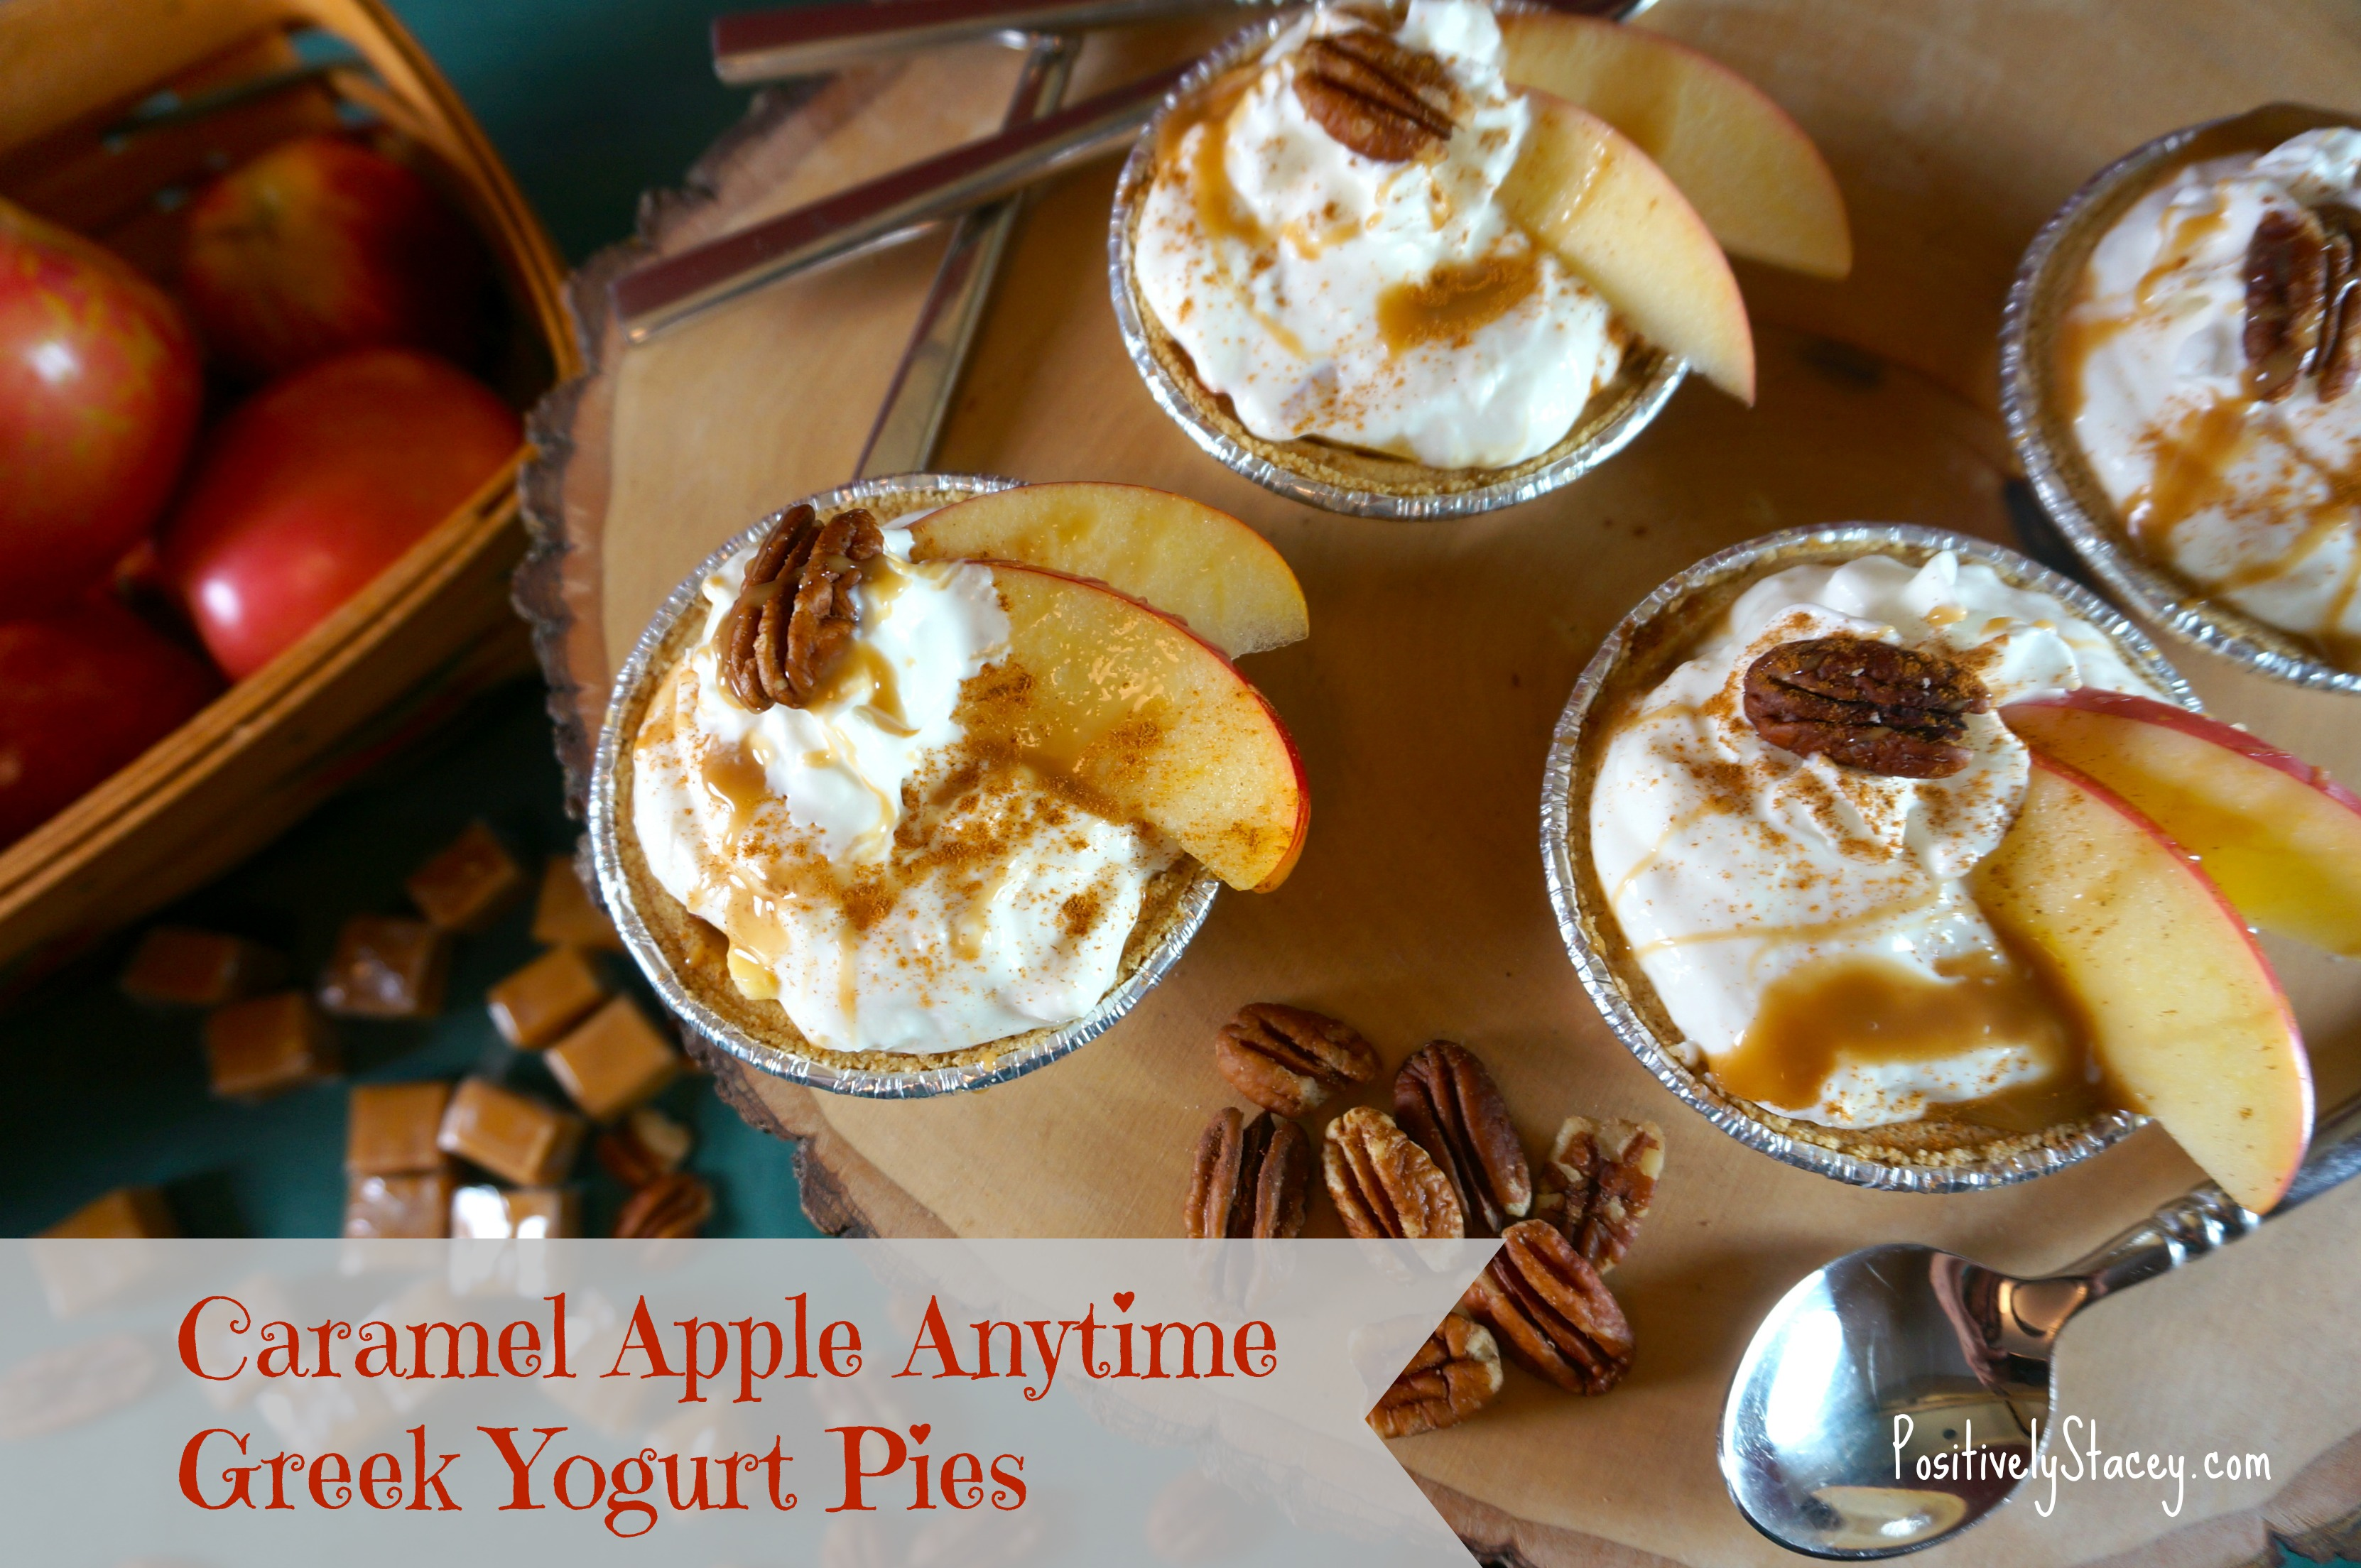 Caramel Apple Anytime Greek Yougurt Pies